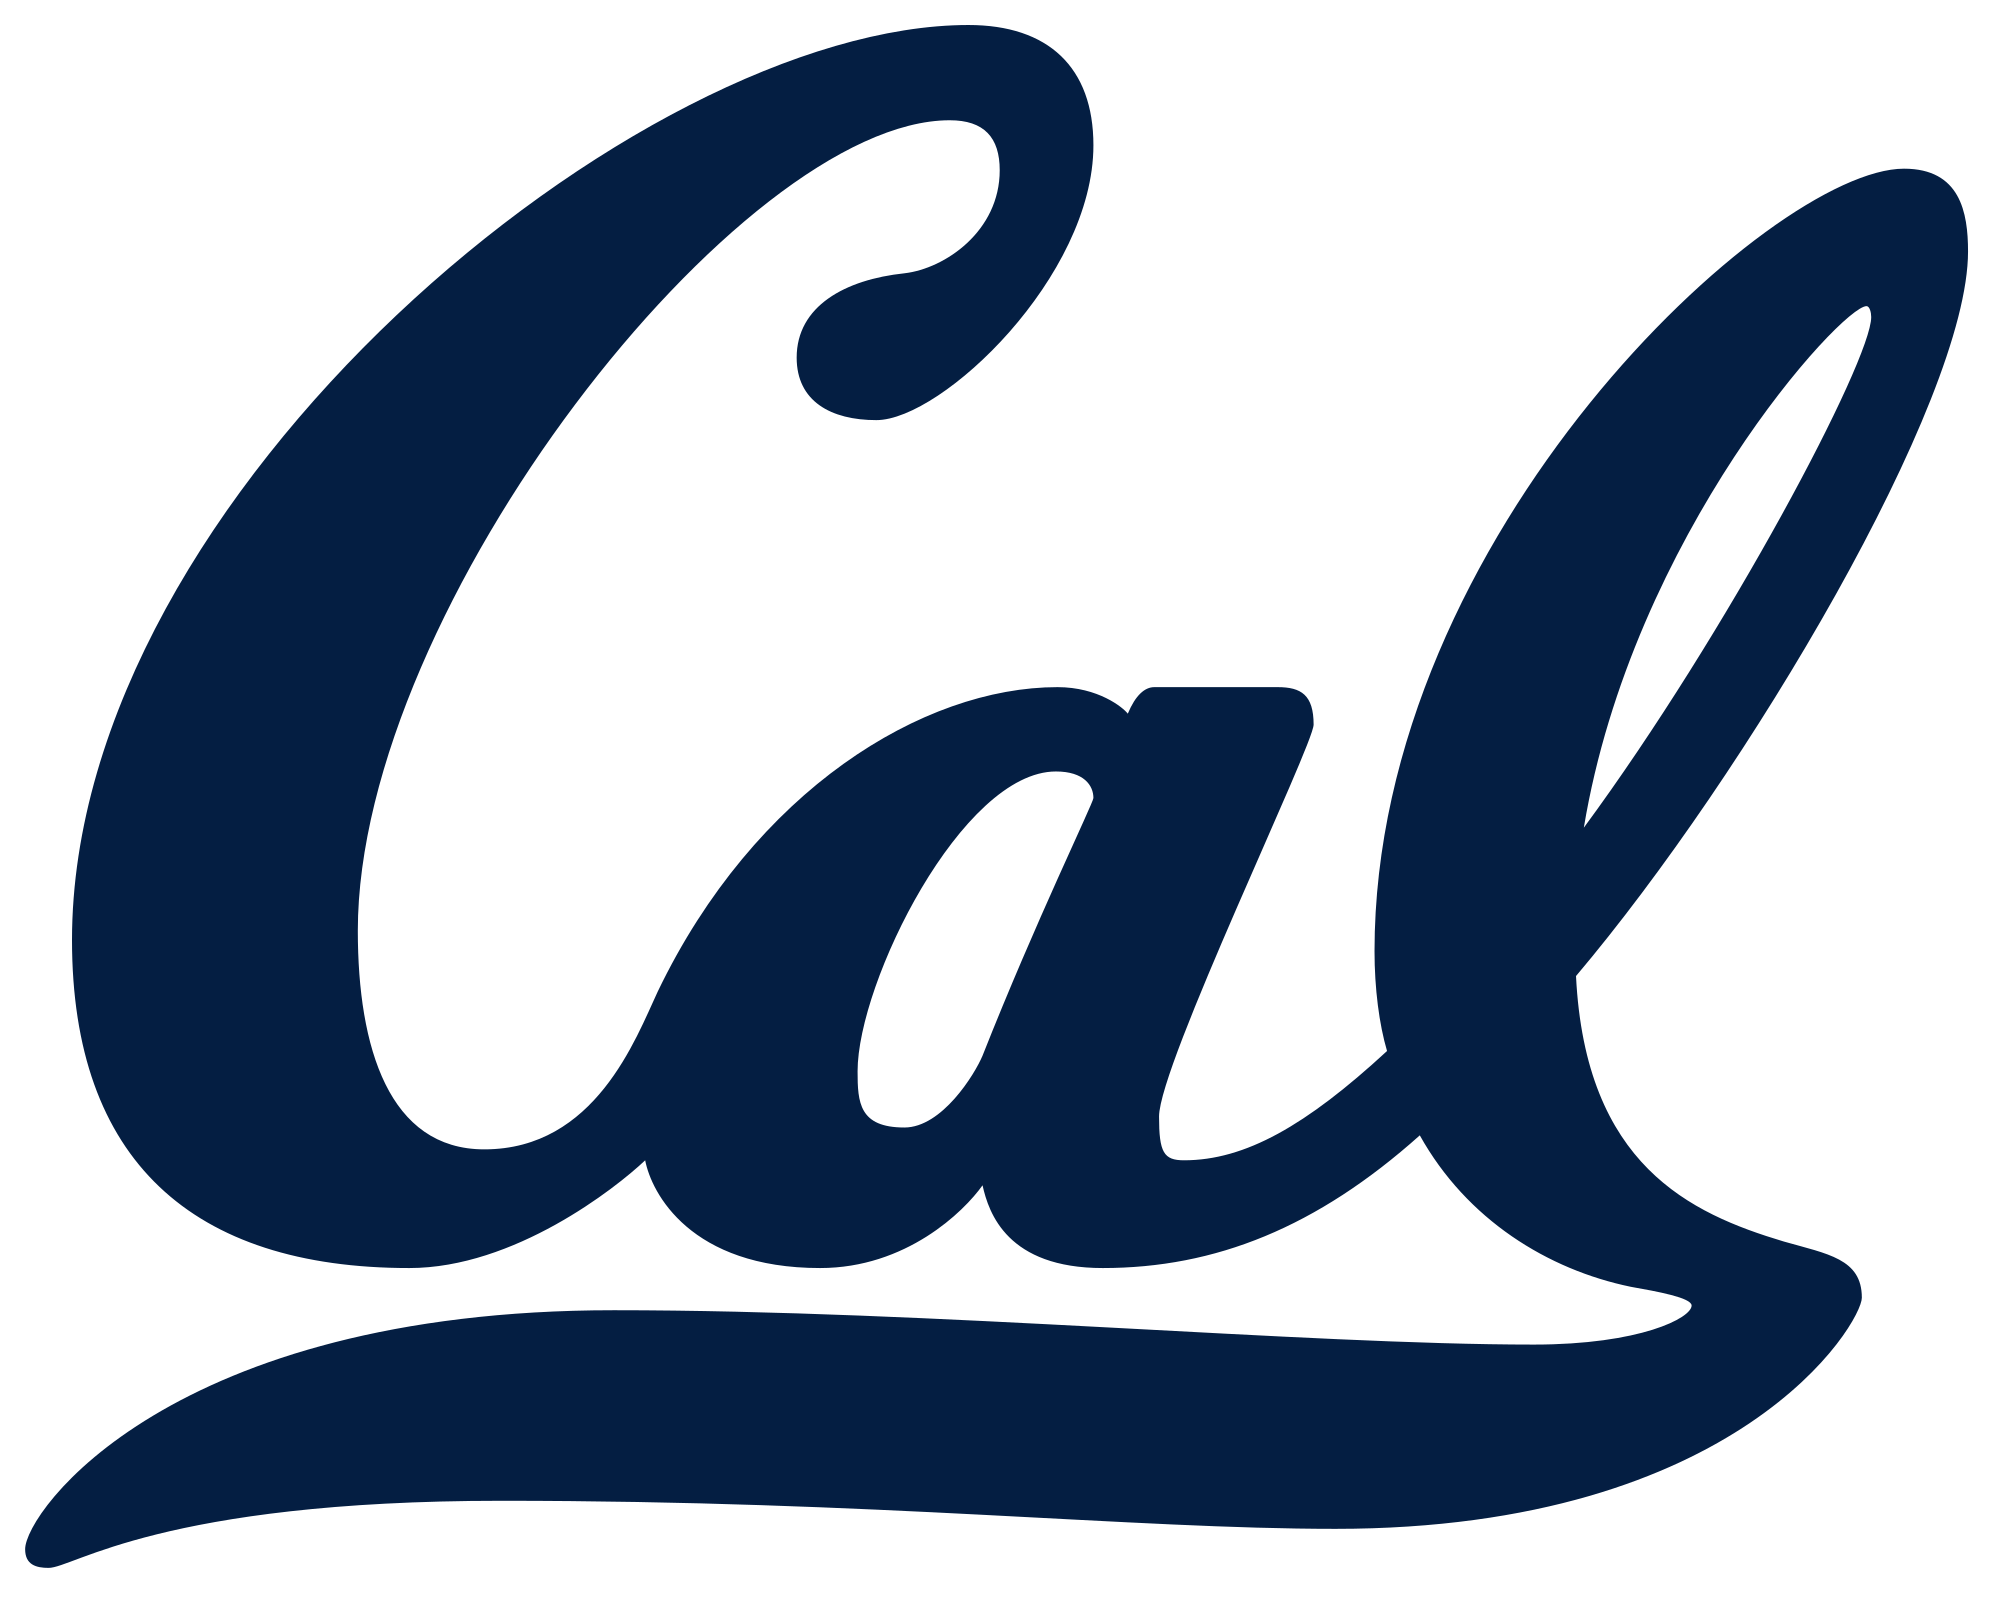 The logo for University of California in Berkeley which placed 9th in our ranking of college rowing teams